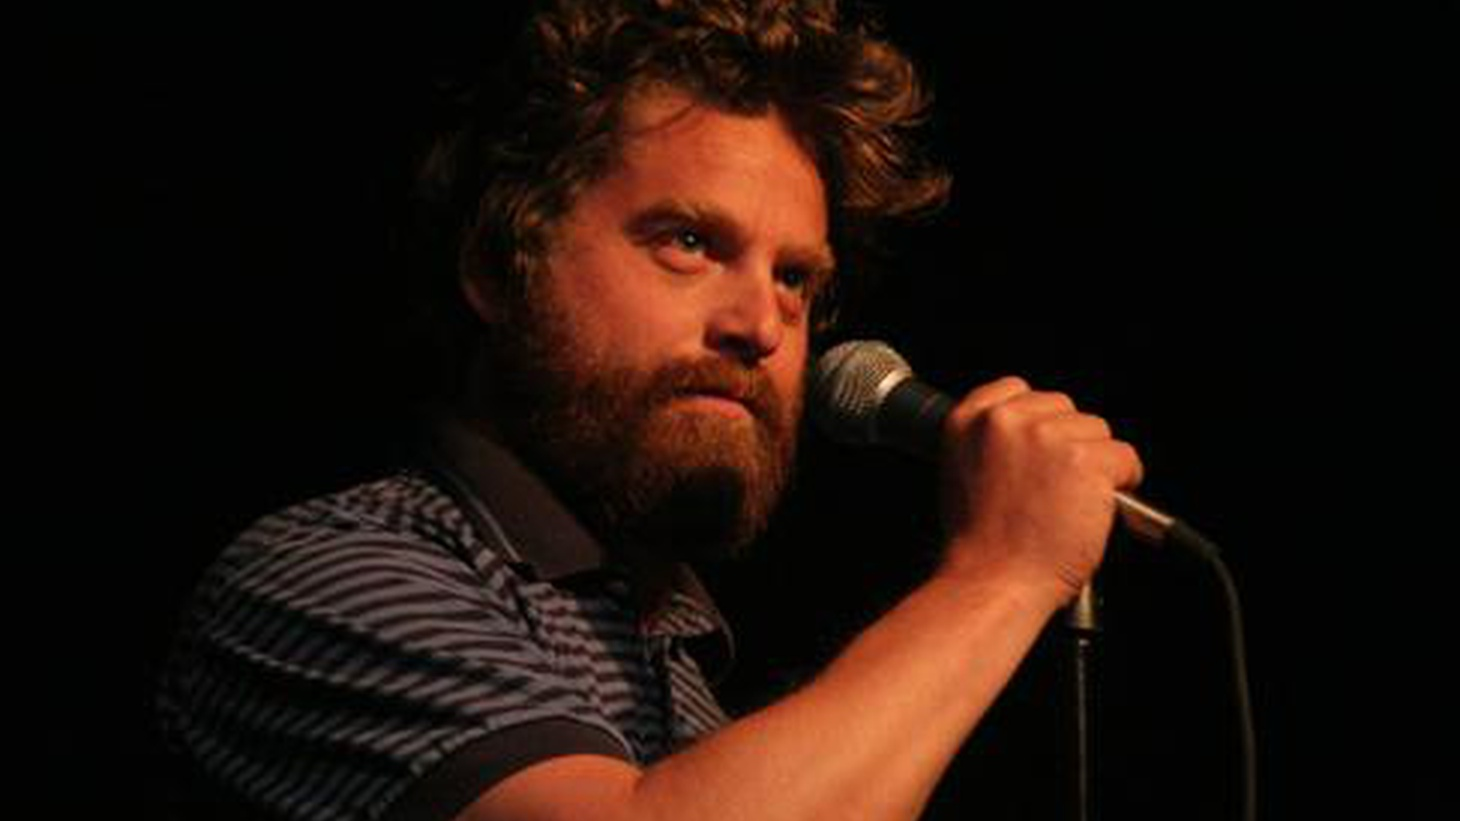 Zach Galifianakis may be one of the funniest guys around, but he takes music seriously. He shares his favorite fun-loving band, some poetic campfire music, as well as his pick for the best screamer in rock and roll right now. He also tells us about the greatest concert he's ever seen.